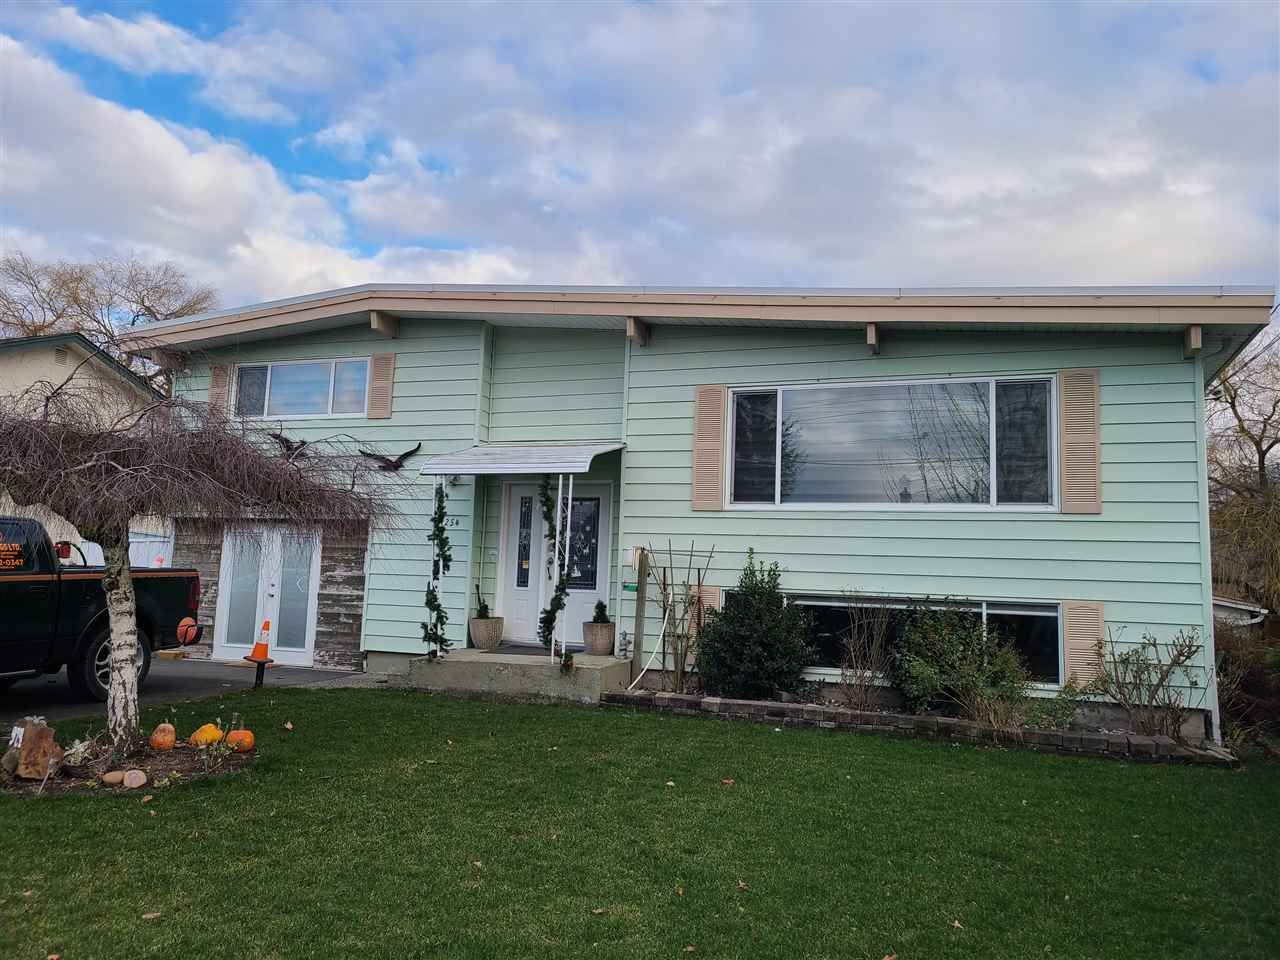 """Main Photo: 9254 JAMES Street in Chilliwack: Chilliwack E Young-Yale House for sale in """"E OF YOUNG N OR TRACKS"""" : MLS®# R2534634"""